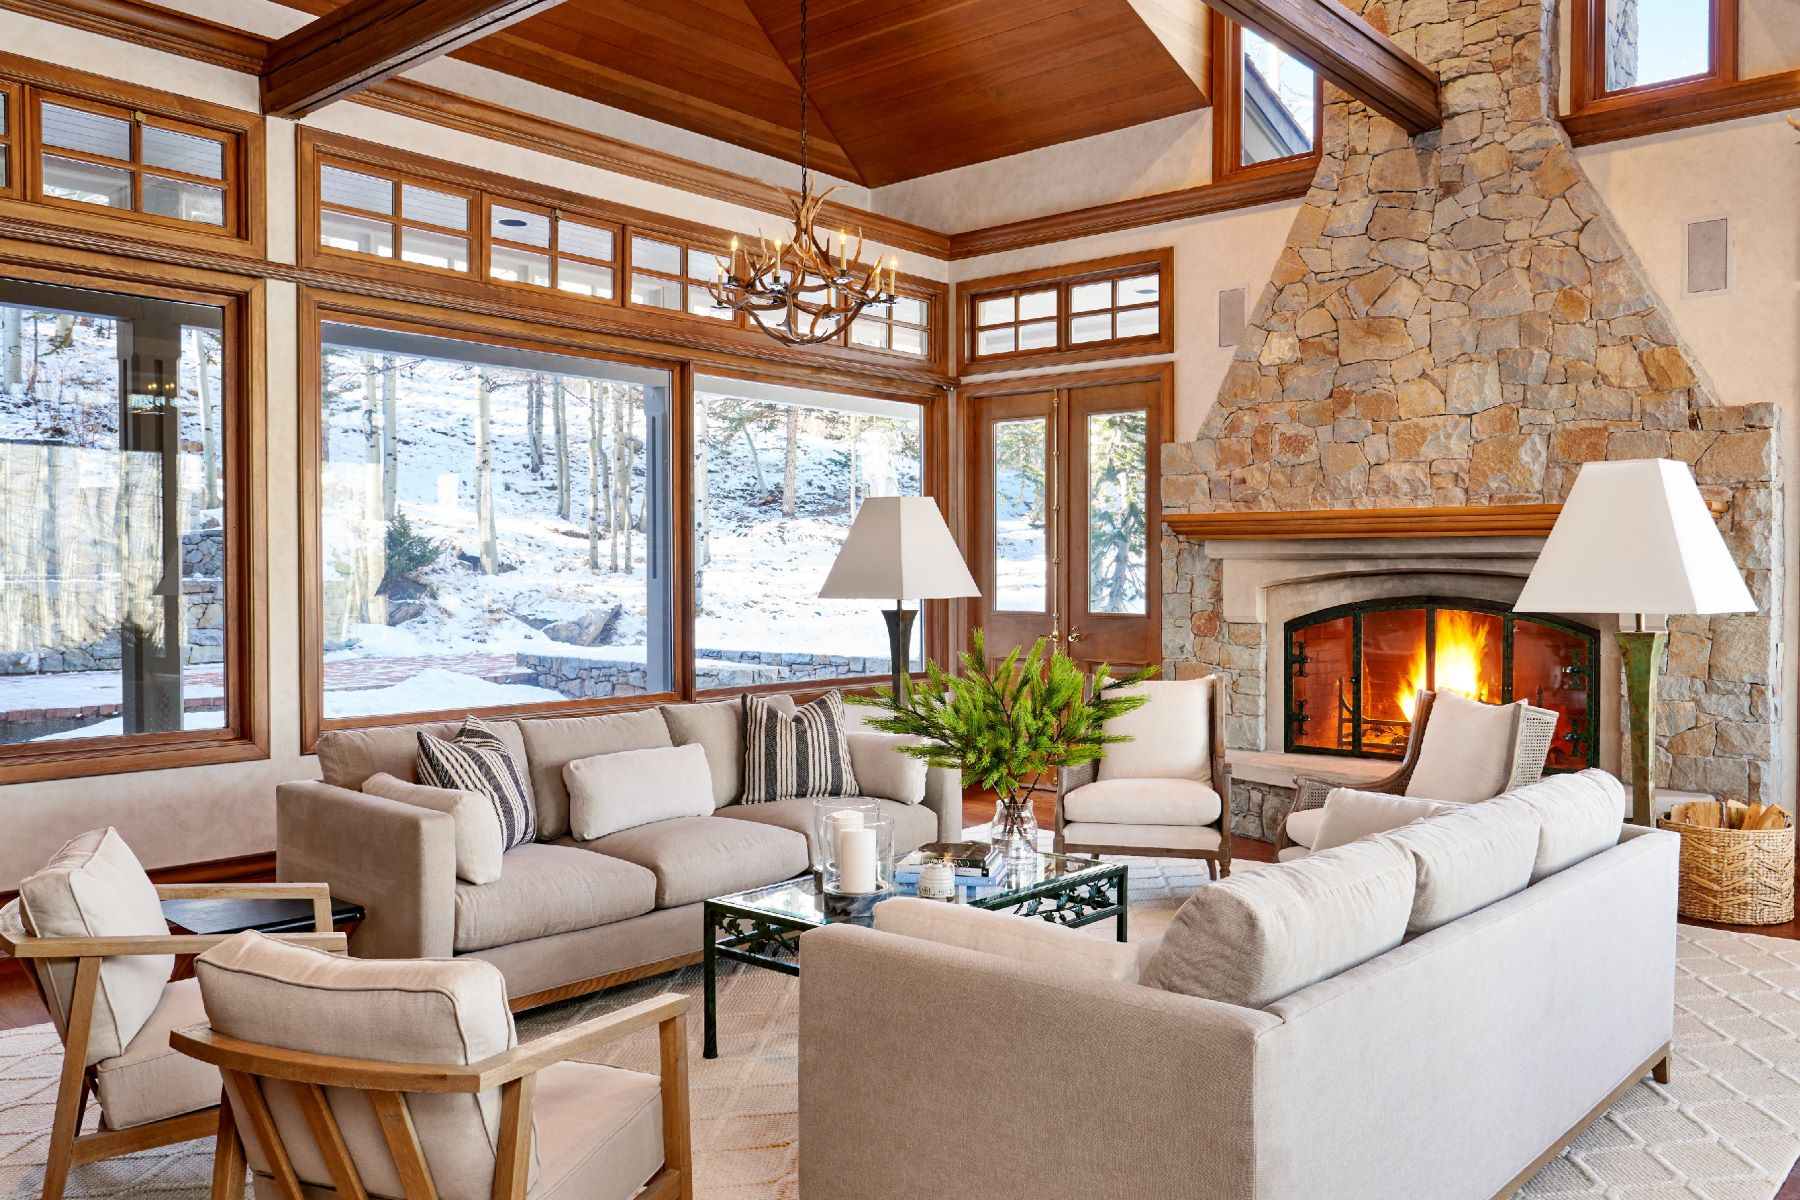 Single Family Home for Active at Beautiful Stone and Stucco Residence 1061 Wood Road Snowmass Village, Colorado 81615 United States